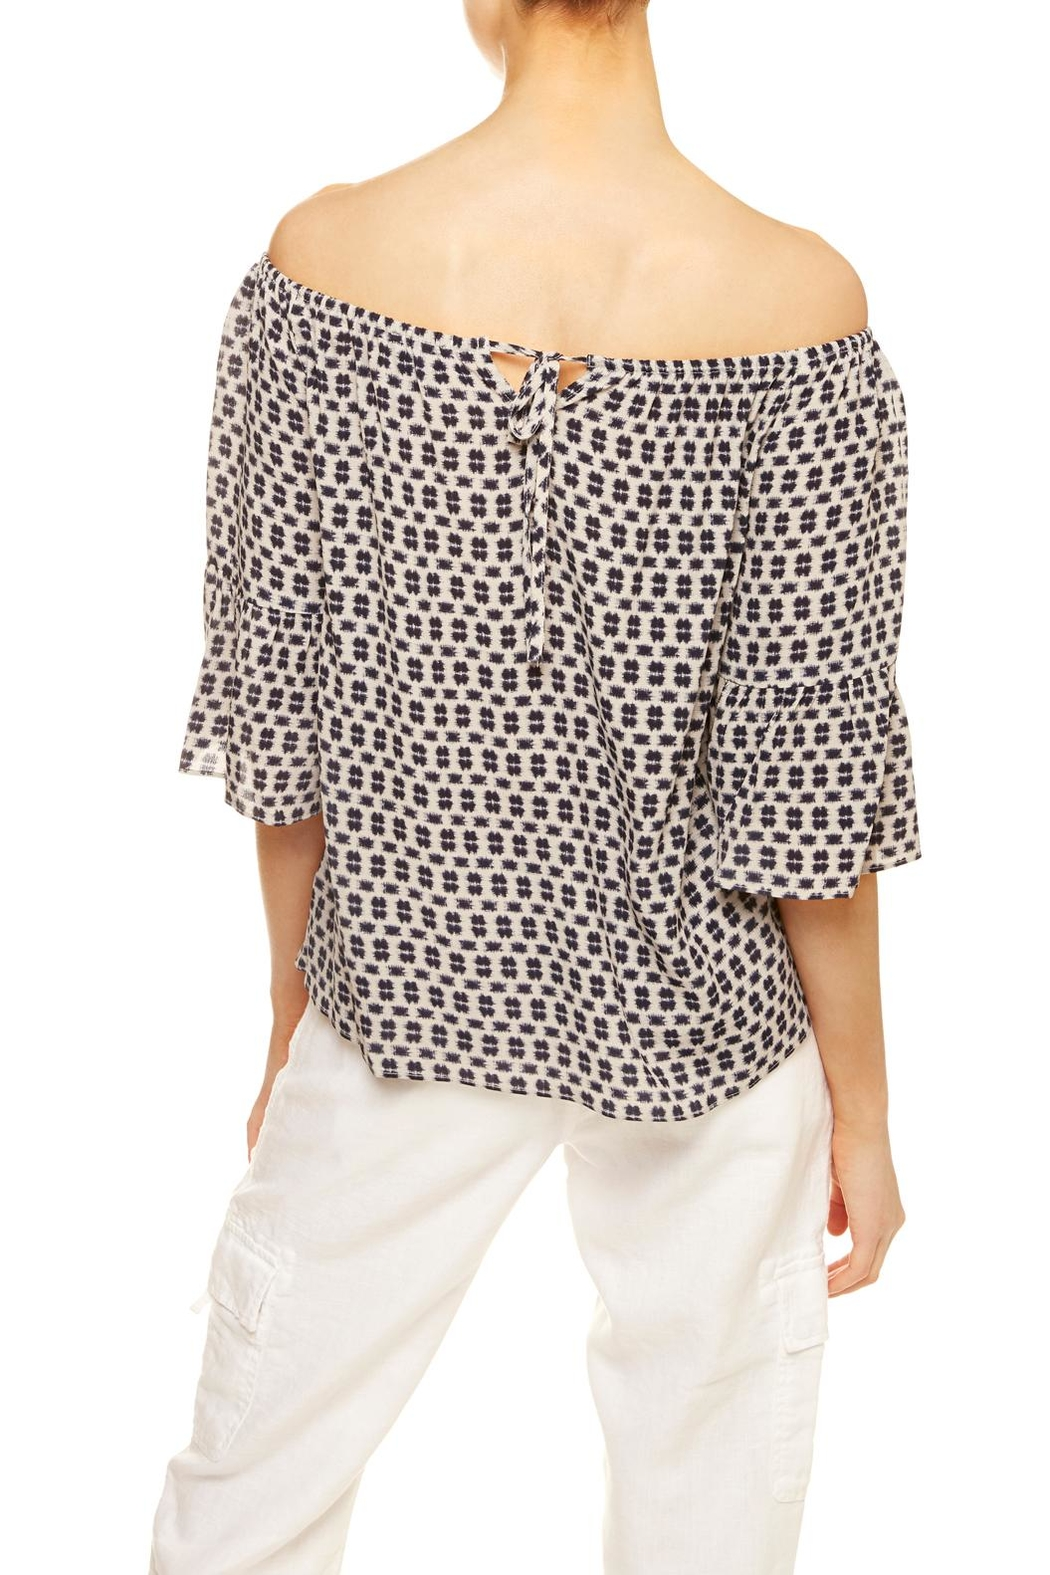 Sanctuary Bell-Sleeved Top - Side Cropped Image